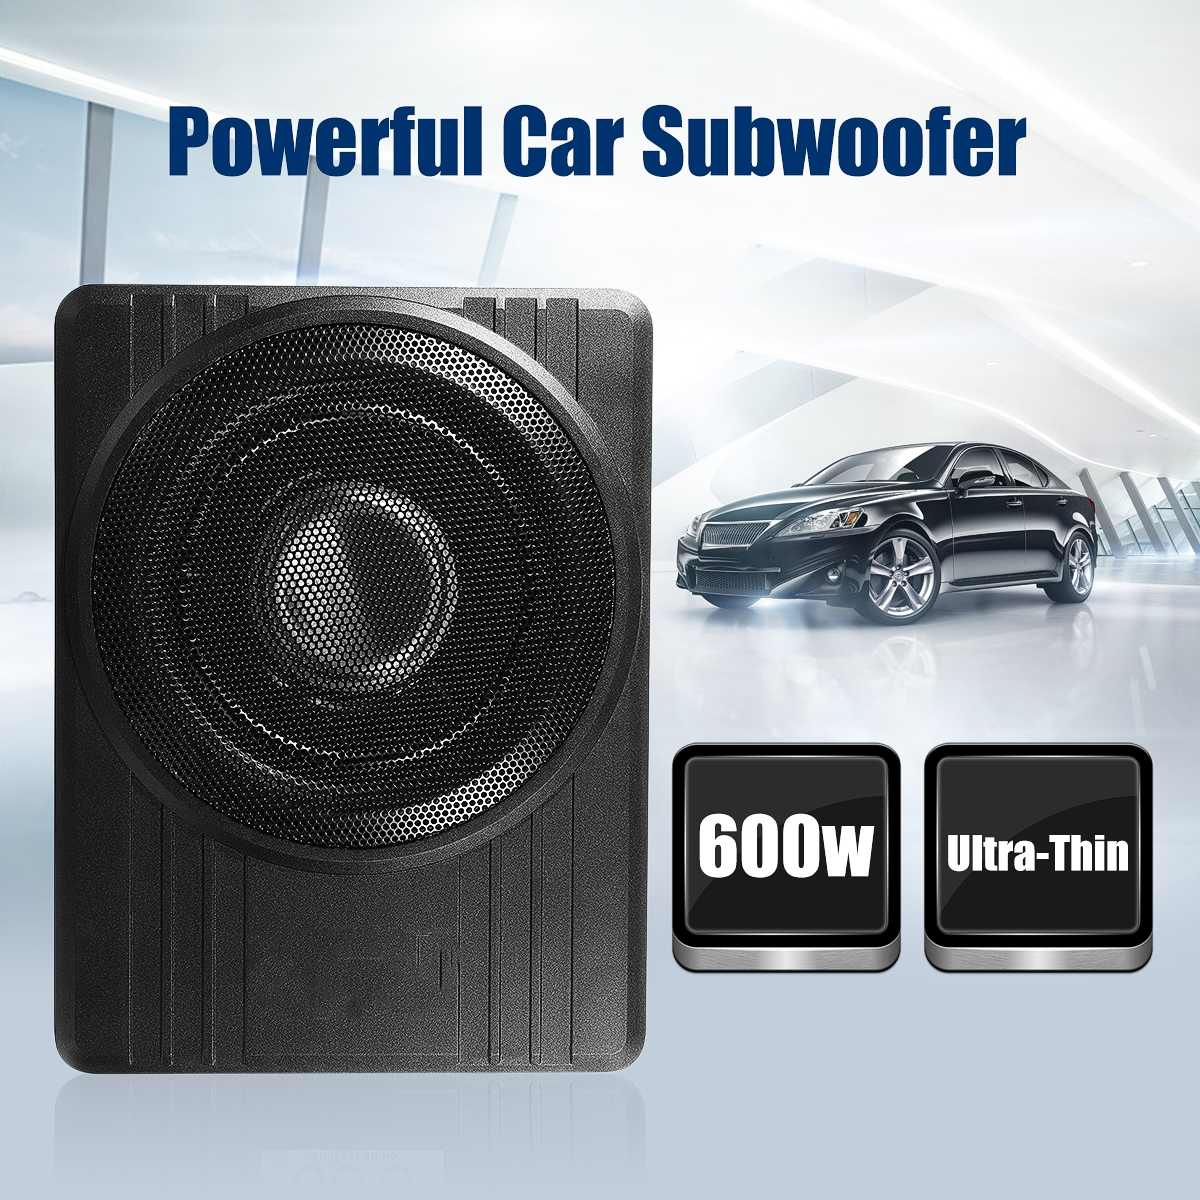 10 600W Under Seat Car Subwoofer Amplifier Ultra Thin Vehicle Active Subwoofer Bass Amplifier Speaker Enclosure Car Audio